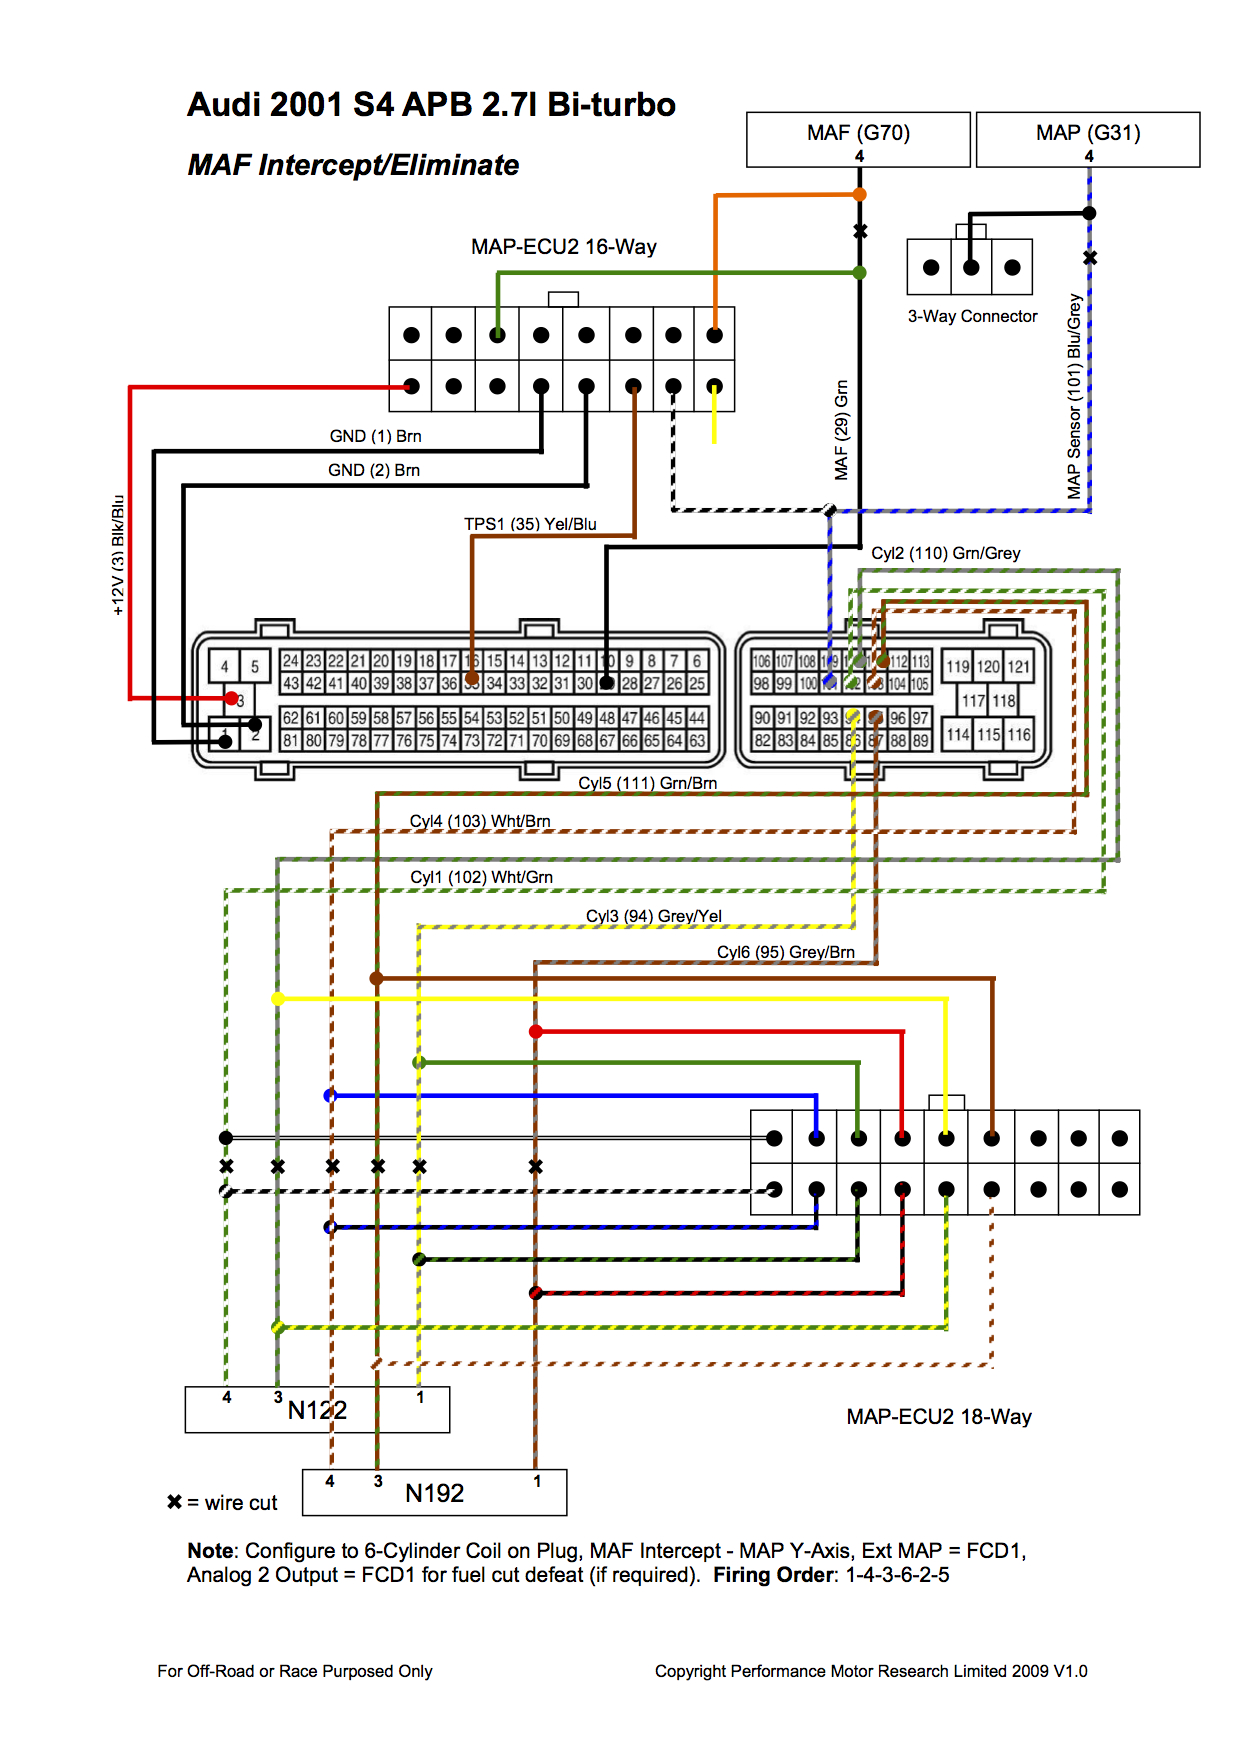 Audi S4 20011 mapecu wiring diagrams audi, bmw, ford, honda, lexus, nissan, toyota lexus wiring diagram at mifinder.co